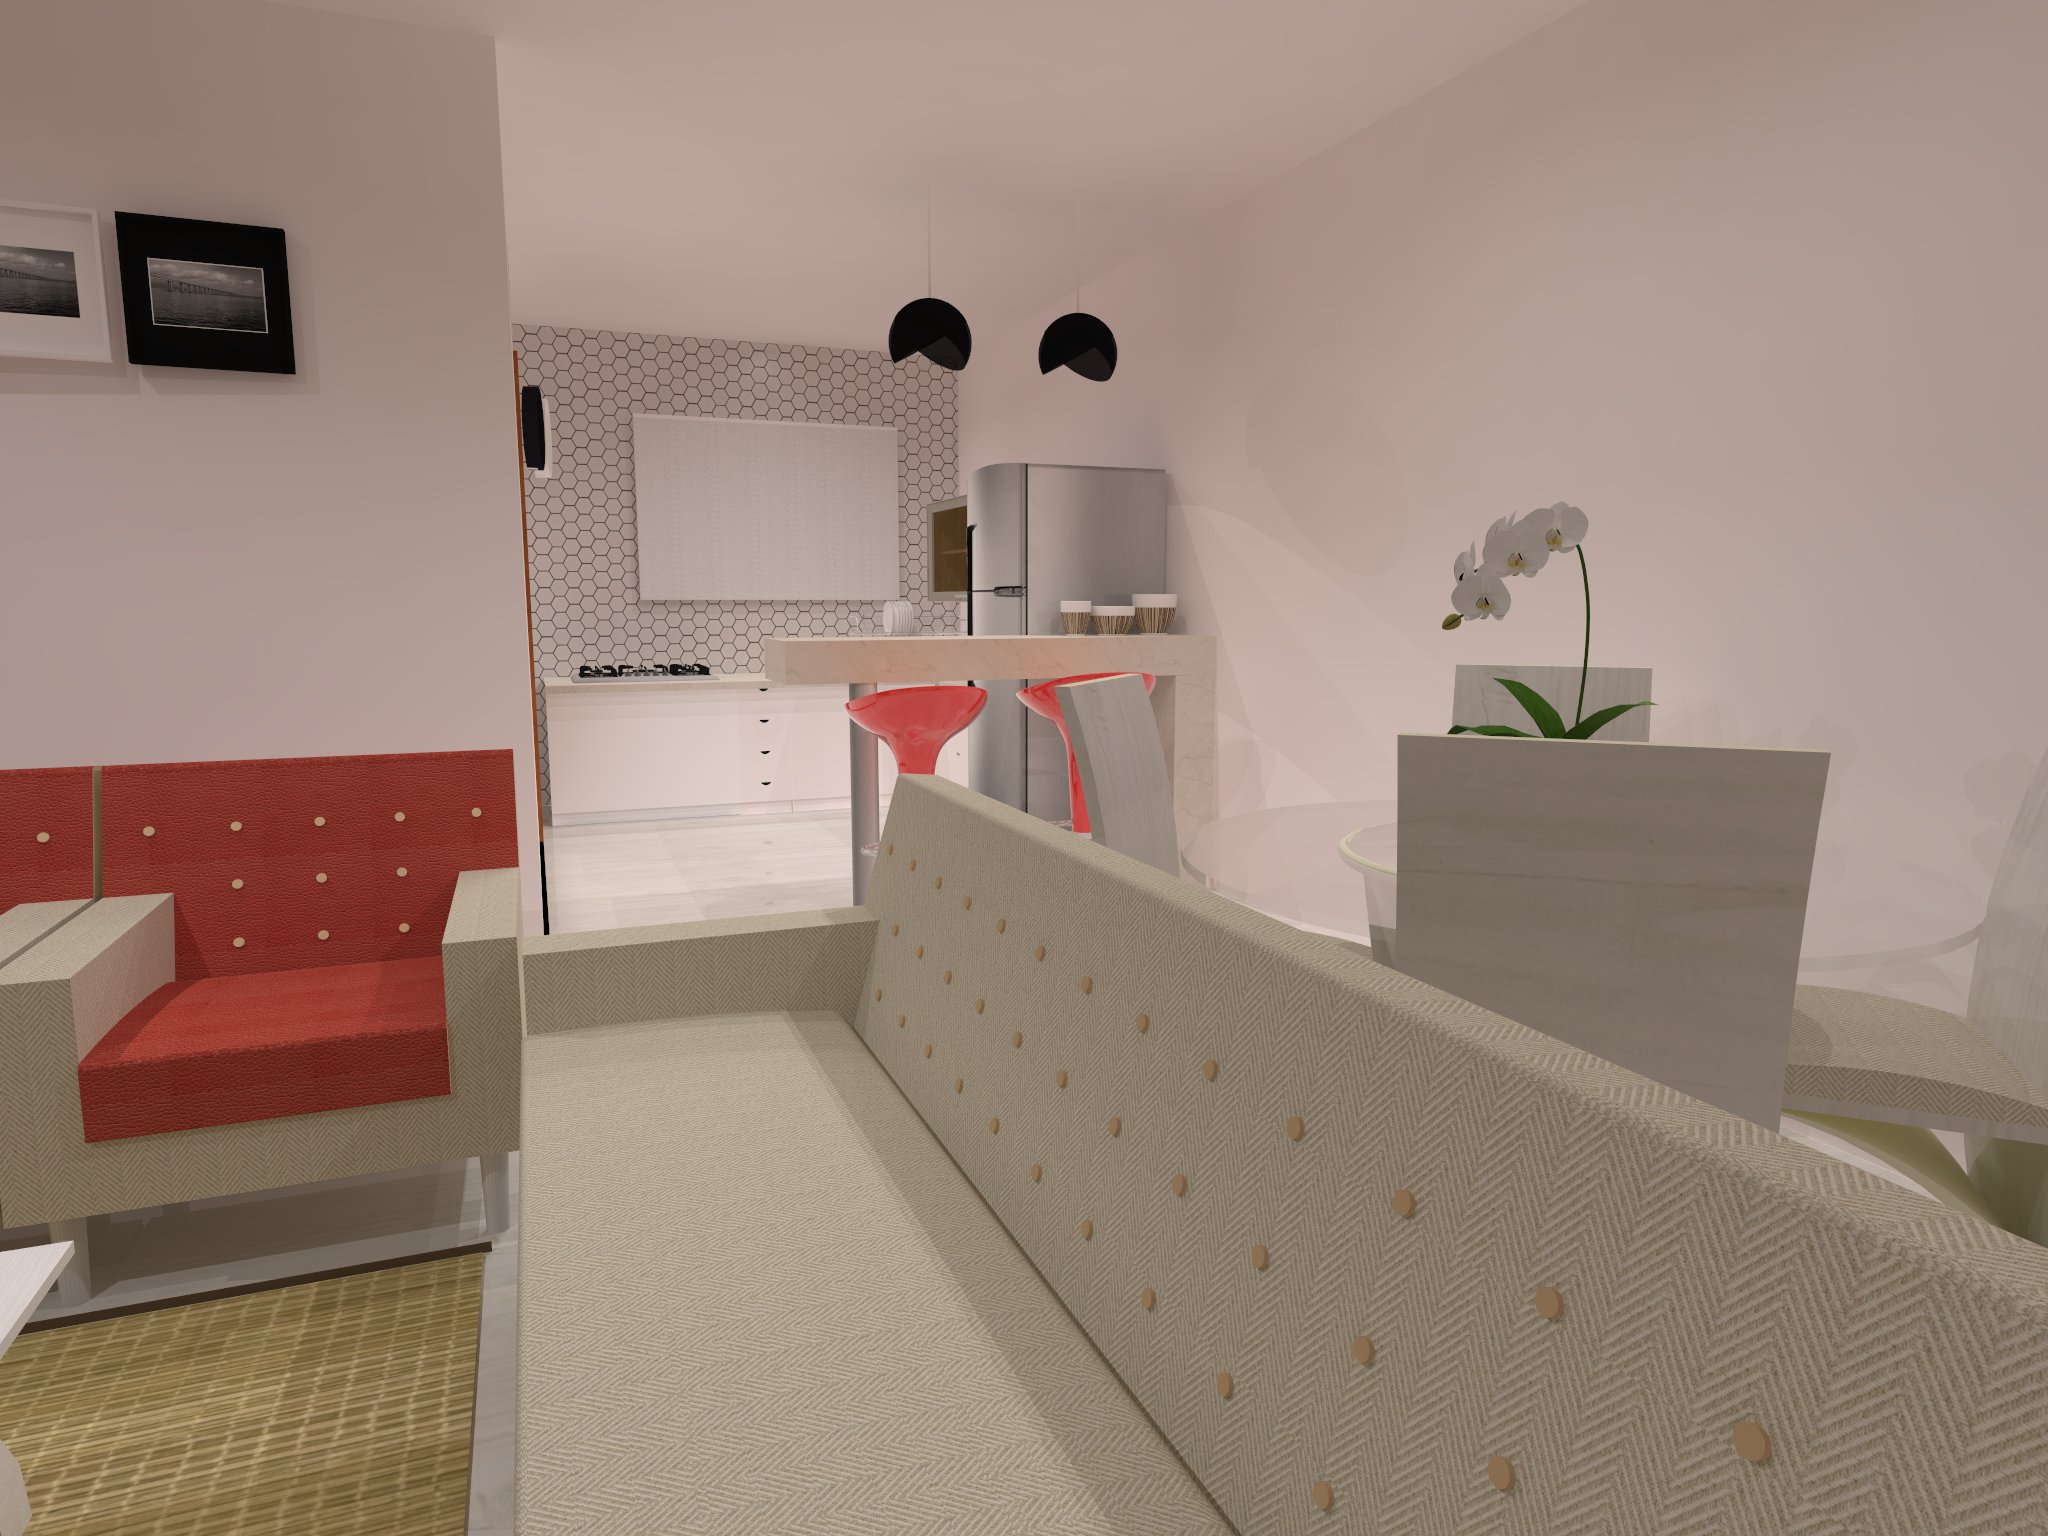 Residencial Vale do Sol - Interior 1